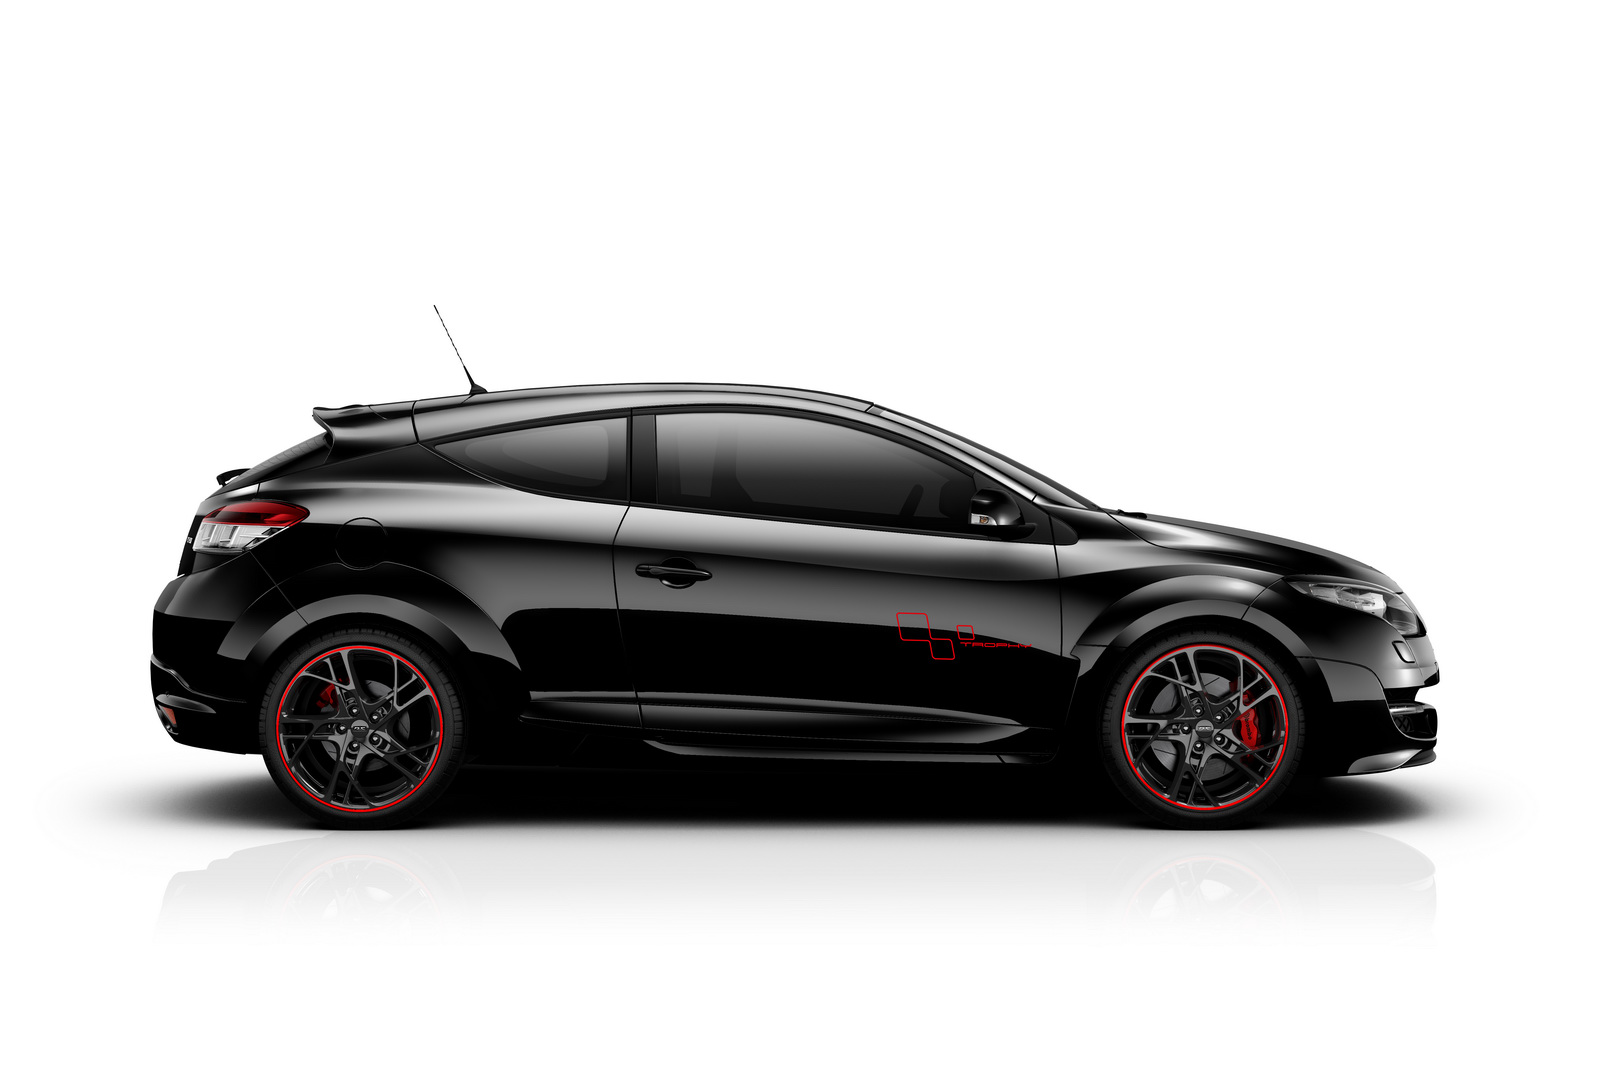 Renault Megane Rs 265 Trophy Pictures to pin on Pinterest